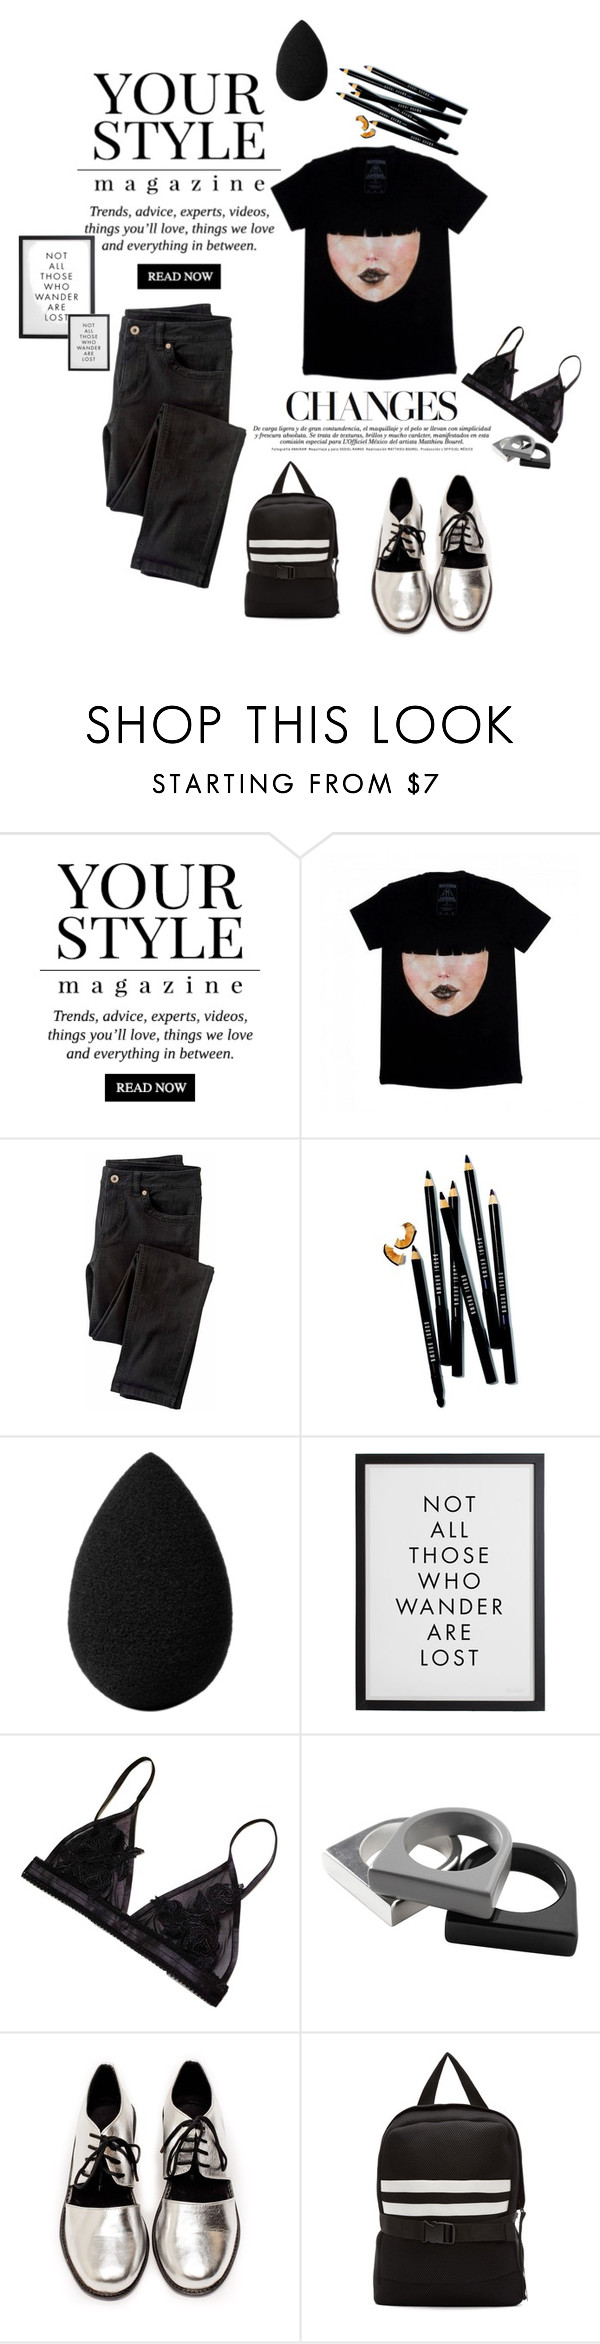 """""""black and silver"""" by madamitsa ❤ liked on Polyvore featuring Pussycat, Wrap, Bobbi Brown Cosmetics, beautyblender, Monki, Shakuhachi and Denis Gagnon"""